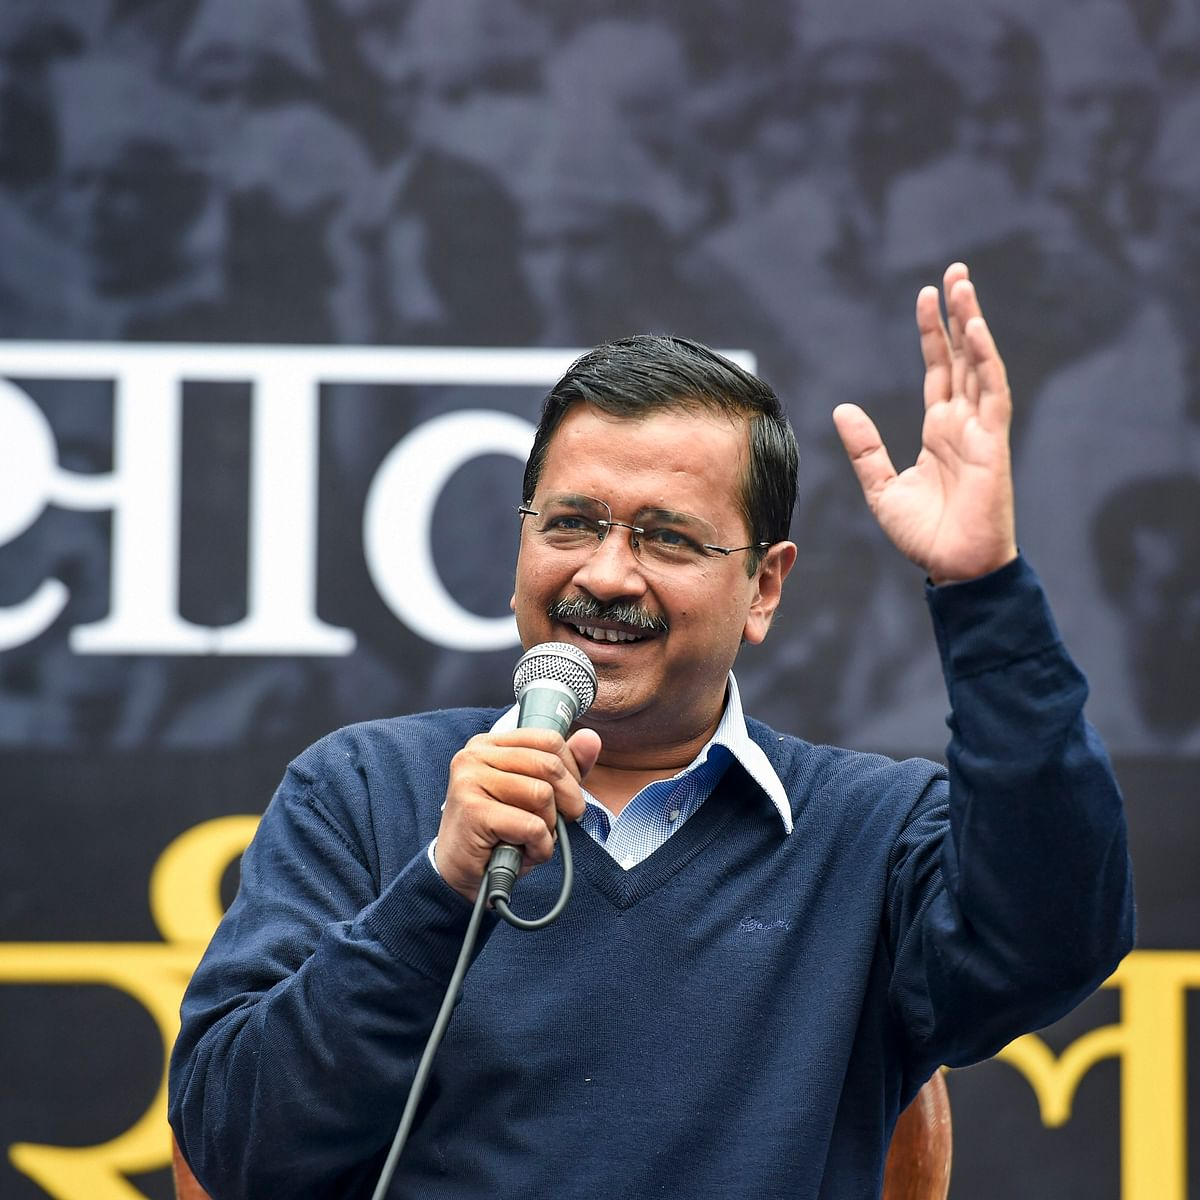 Delhi Election 2020 Exit Poll Latest Updates: Exit polls predict comfortable  victory for AAP